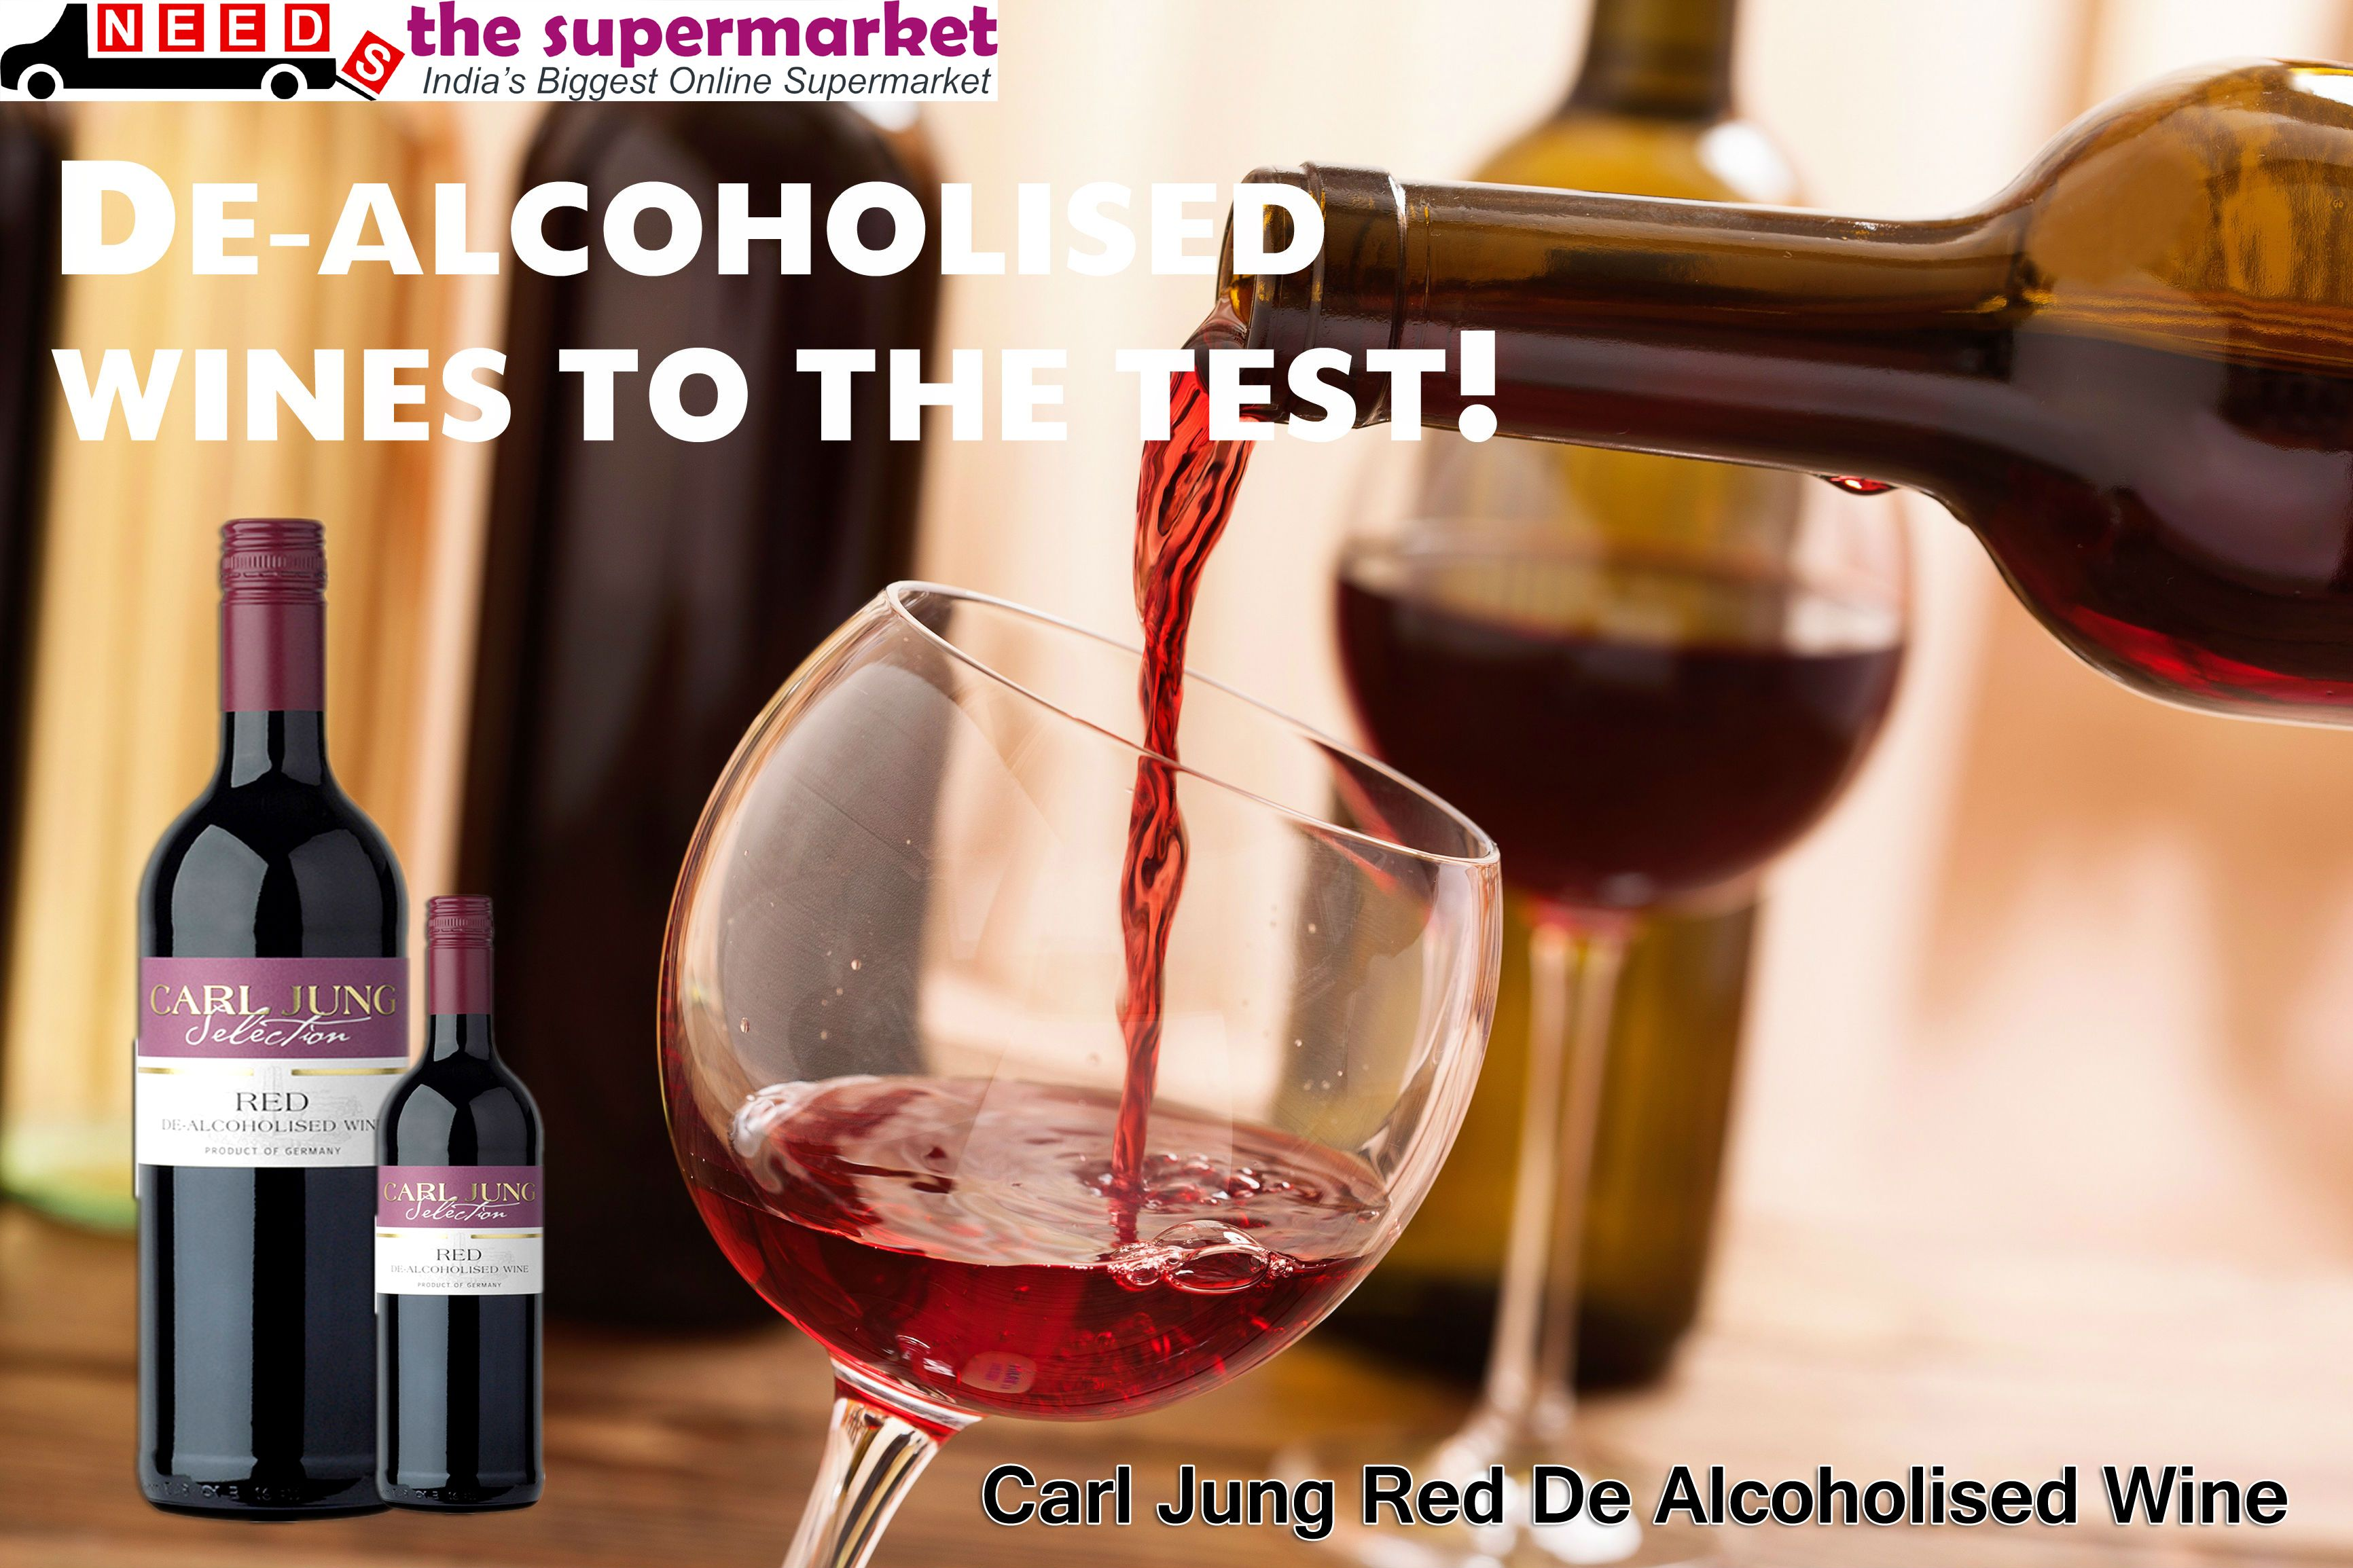 Buynow Carl Jung Red De Alcoholised Wine Online At Best Price 525 00 On Needsthesupermarket An Online Grocery Store Supermarket Online Grocery Shopping